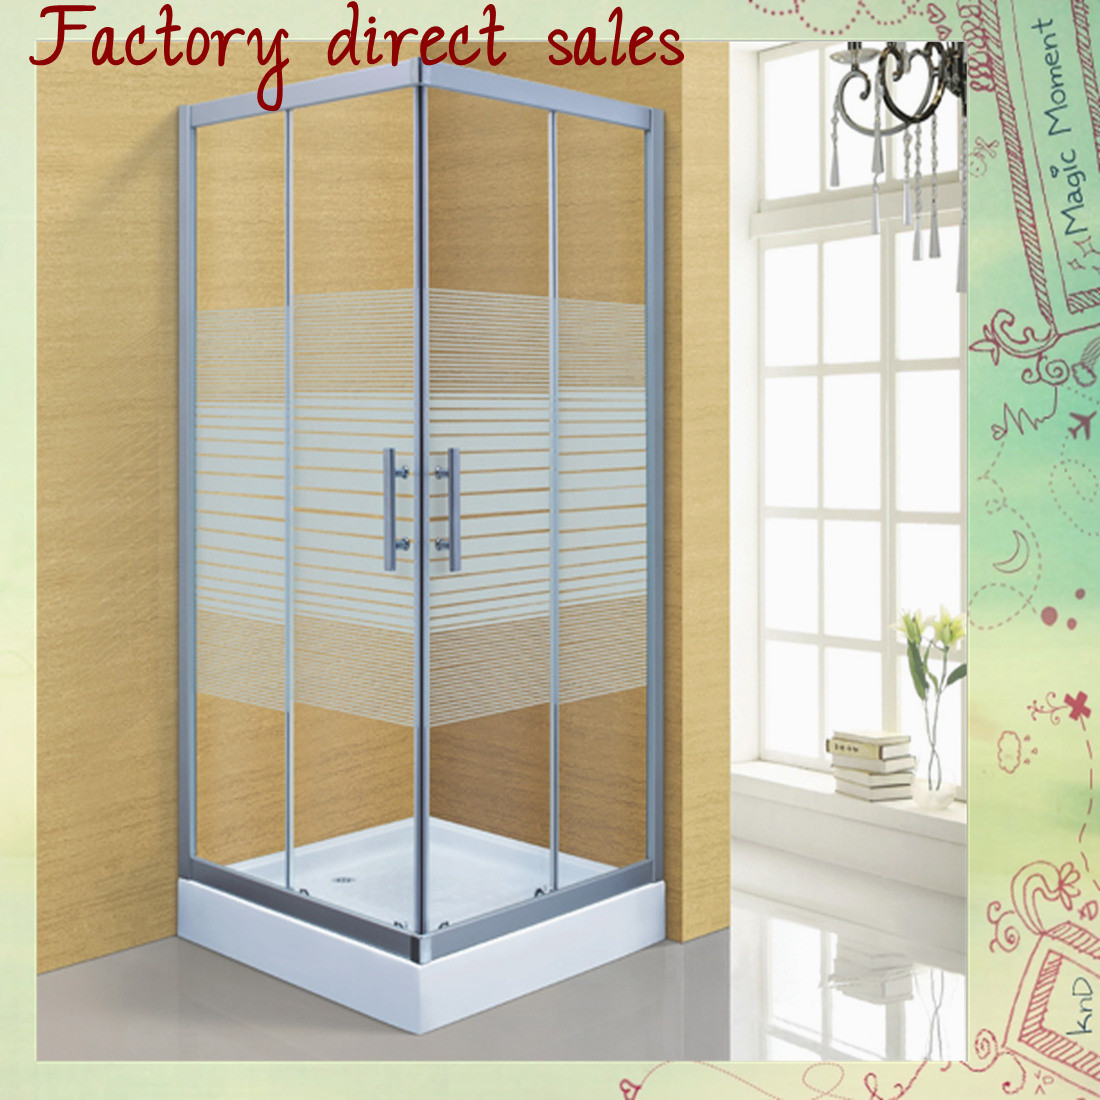 Hot Selling Bathroom Sanitary Ware Shower Cabin (A-238)